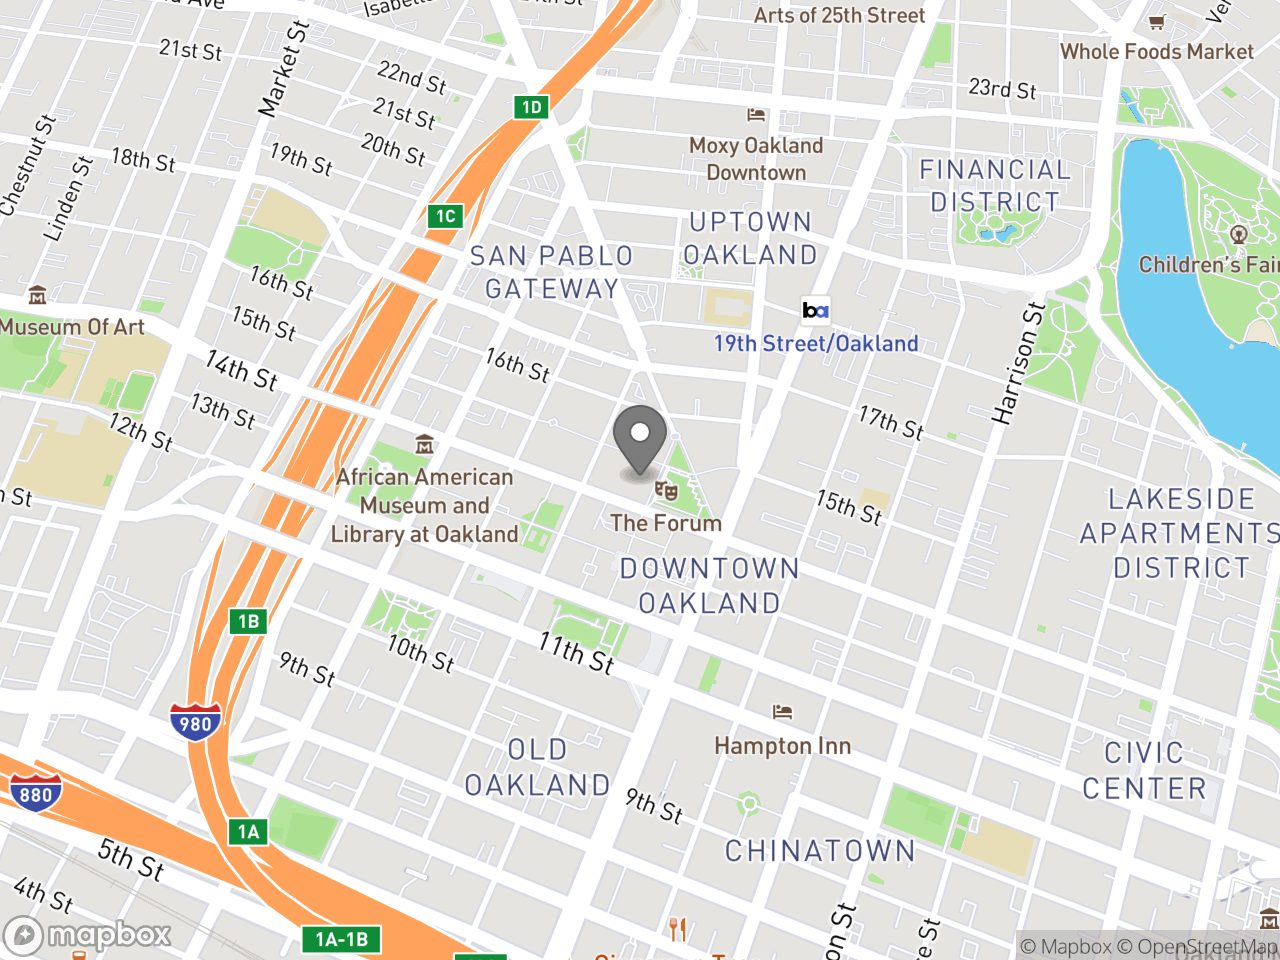 Map image for Police Commission October 10, 2019, located at 1 Frank H. Ogawa Plaza in Oakland, CA 94612